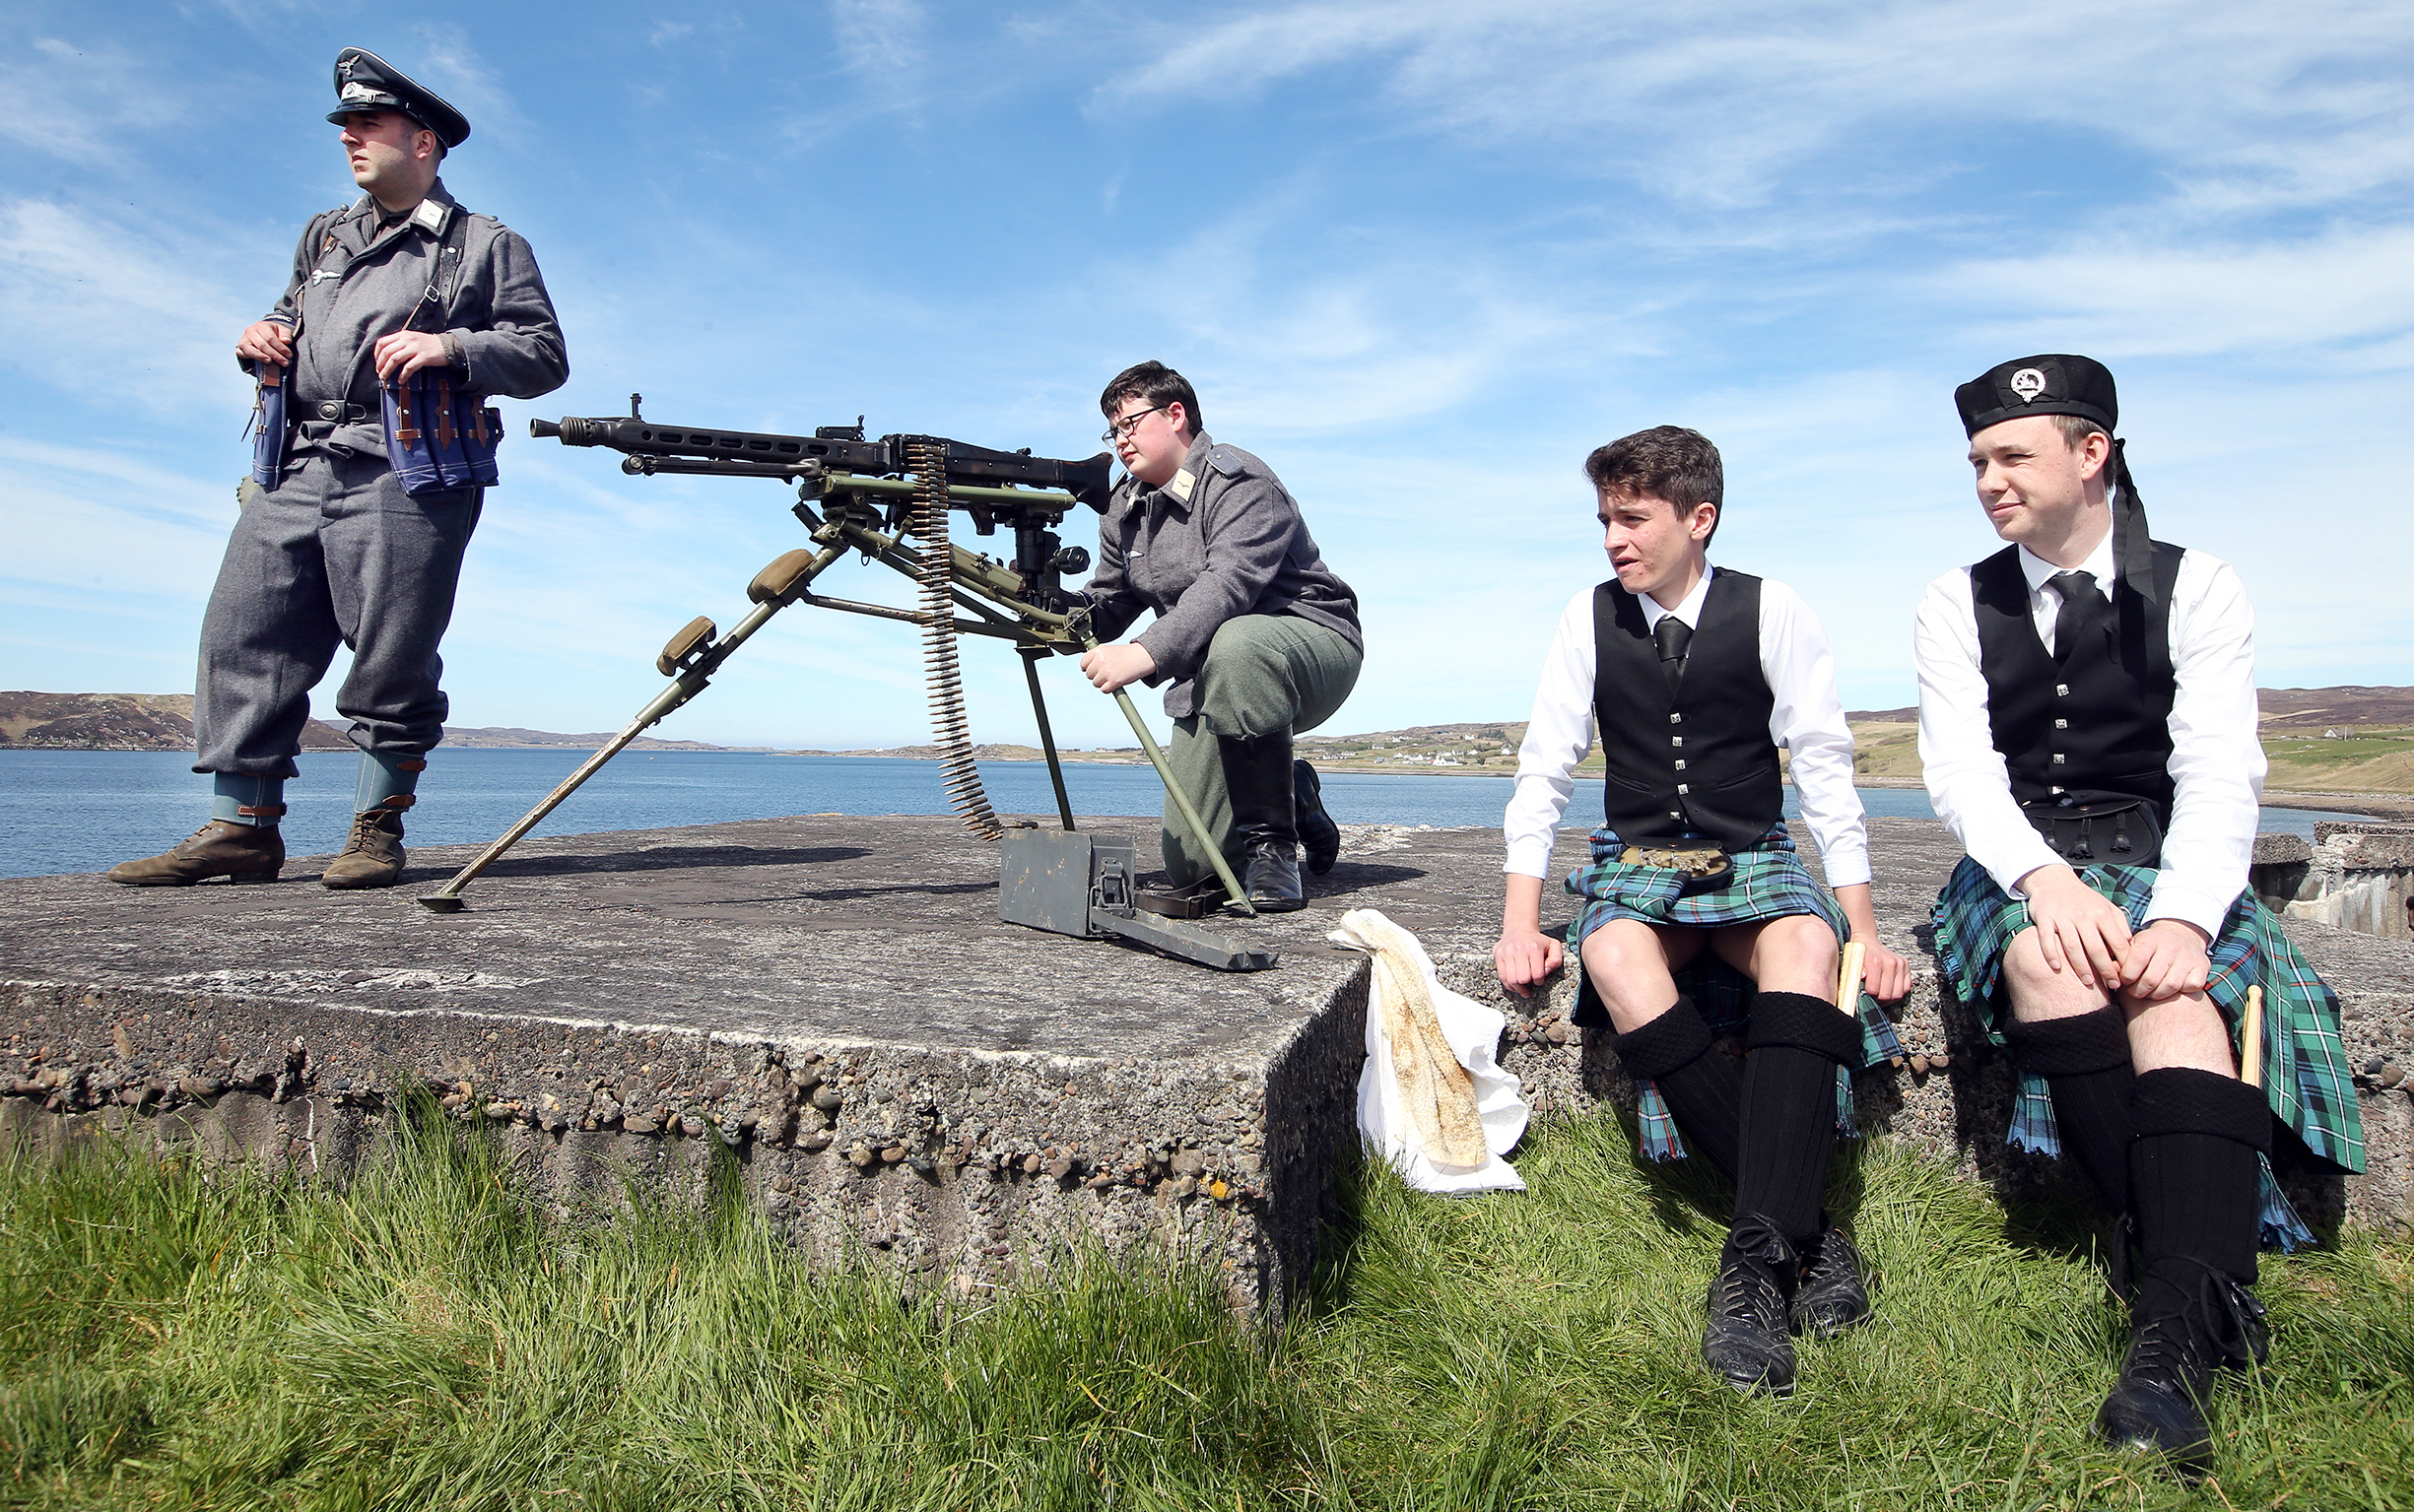 Cameron Walton and Max Conway from the Gairloch and District Pipe Band take in the proceedings from a gun tower on the shores of Loch Ewe.